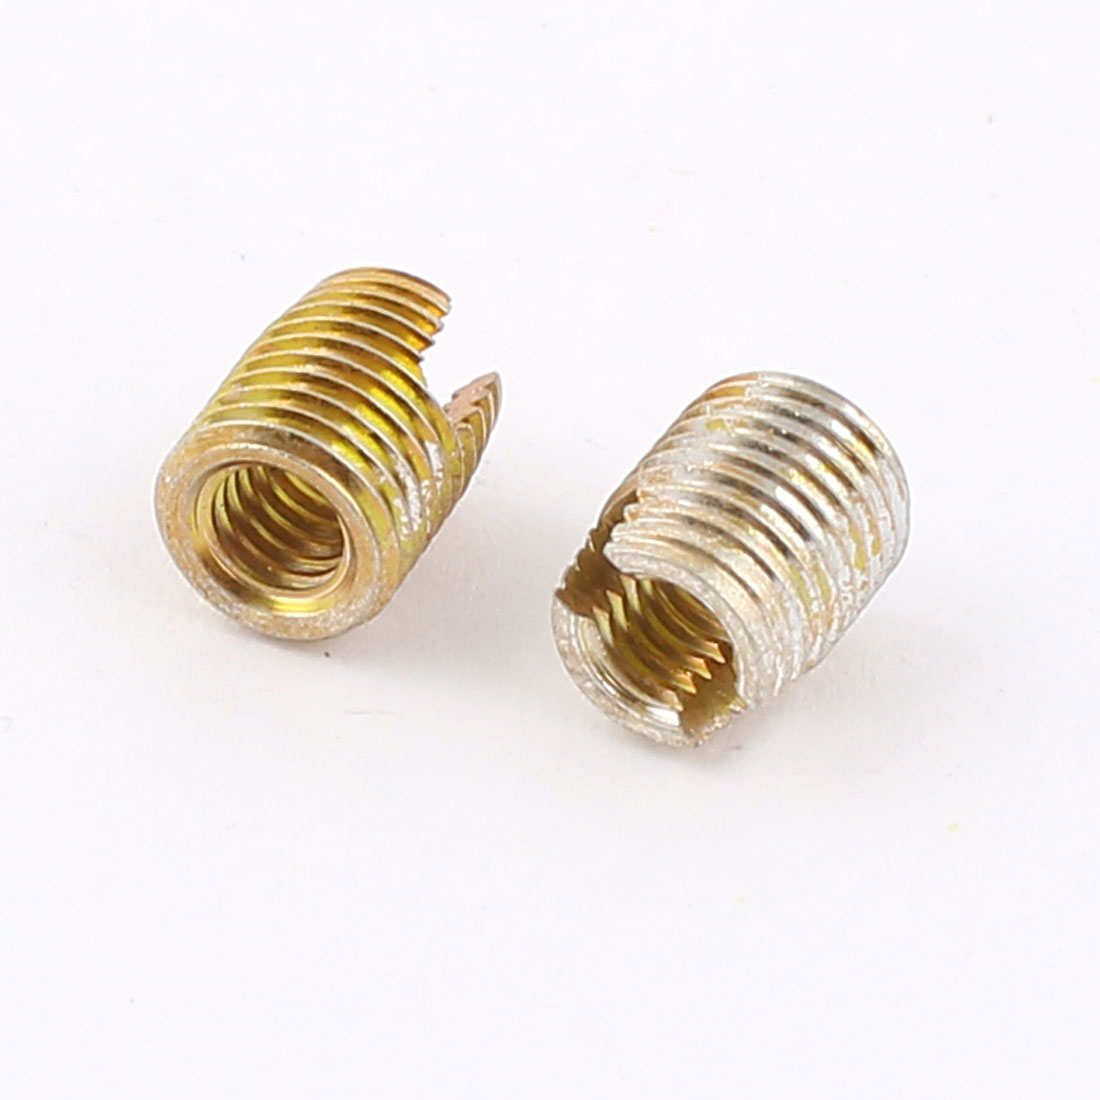 Unique Bargains 2 Pcs Brass Tone 8mm x 6mm x 3.4mm Self Tapping Threaded Inserts